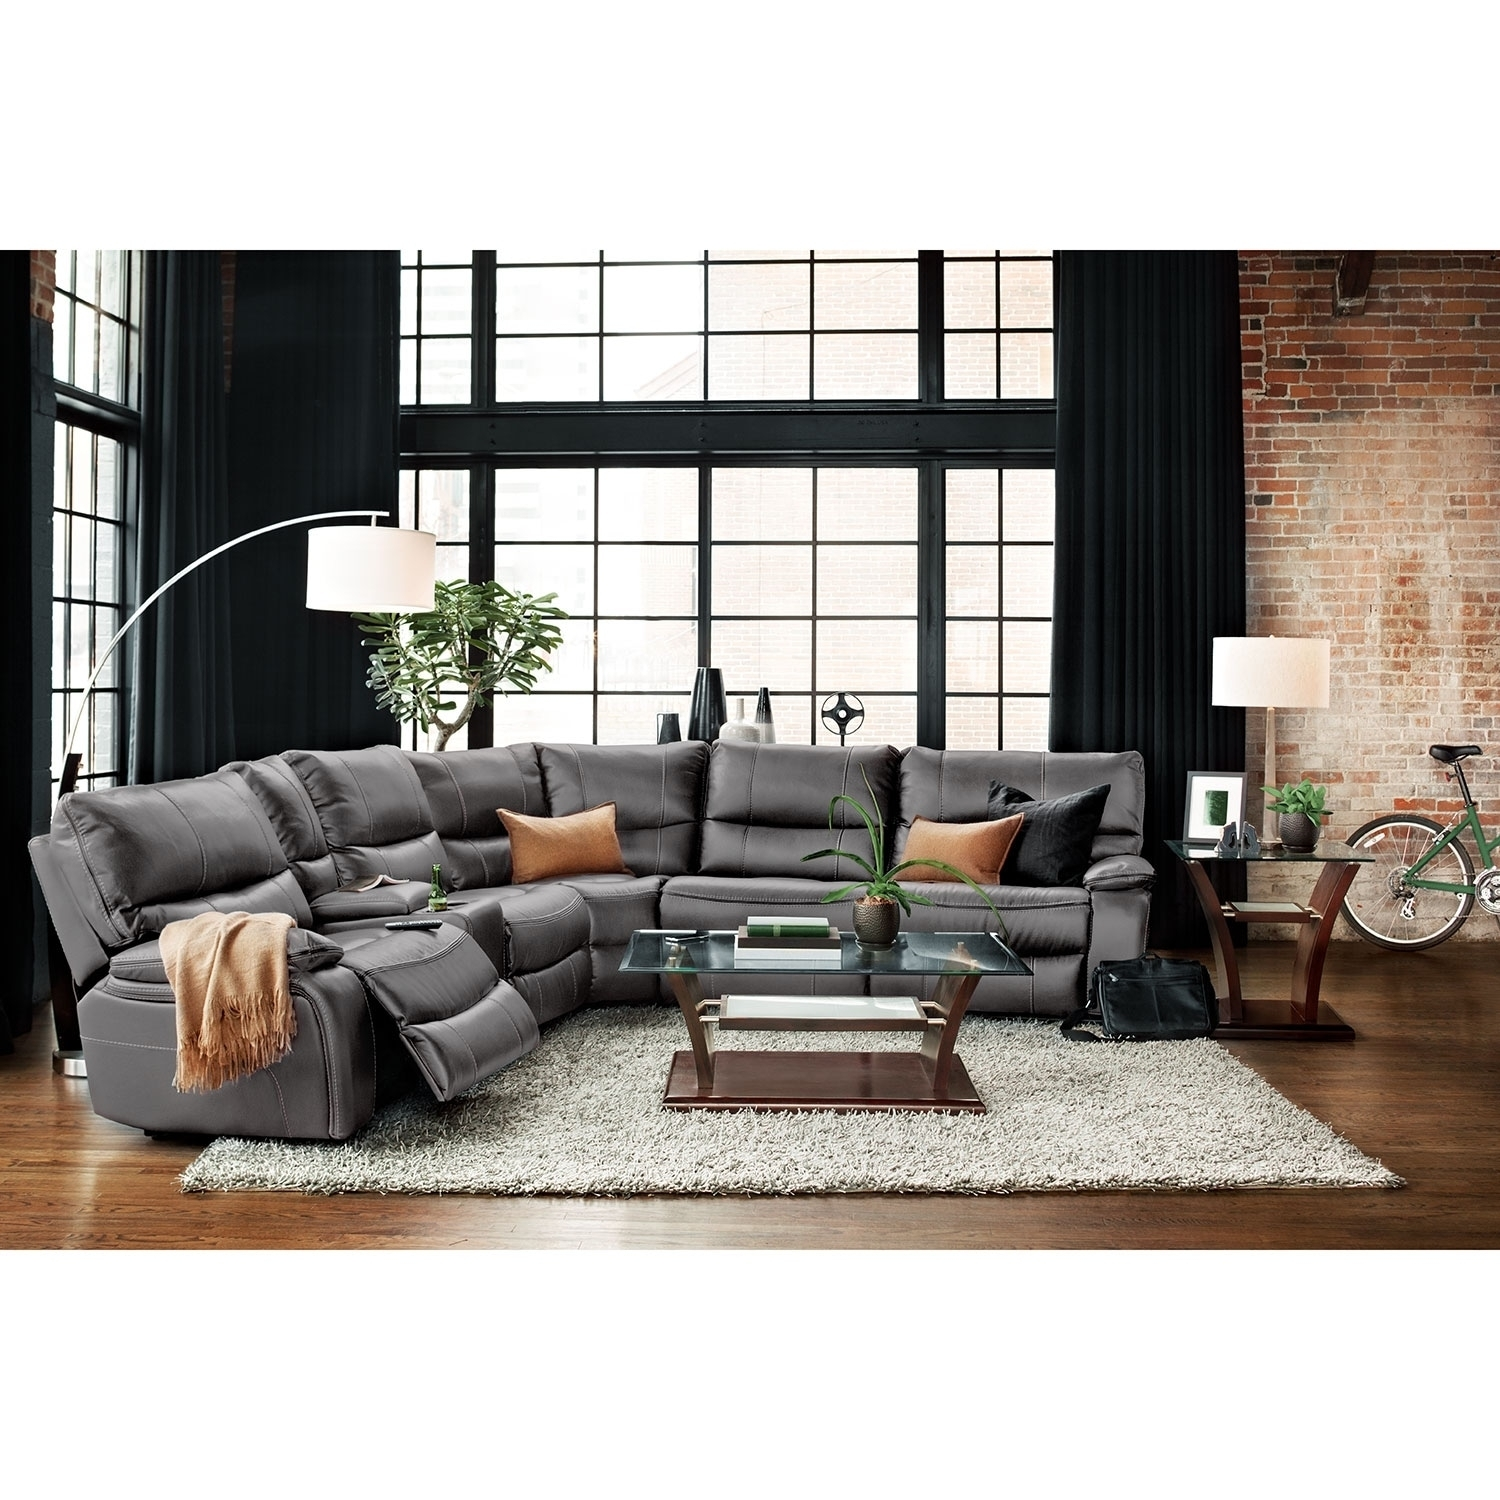 Orlando 6-Piece Power Reclining Sectional With 1 Stationary Chair throughout Orlando Sectional Sofas (Image 7 of 10)